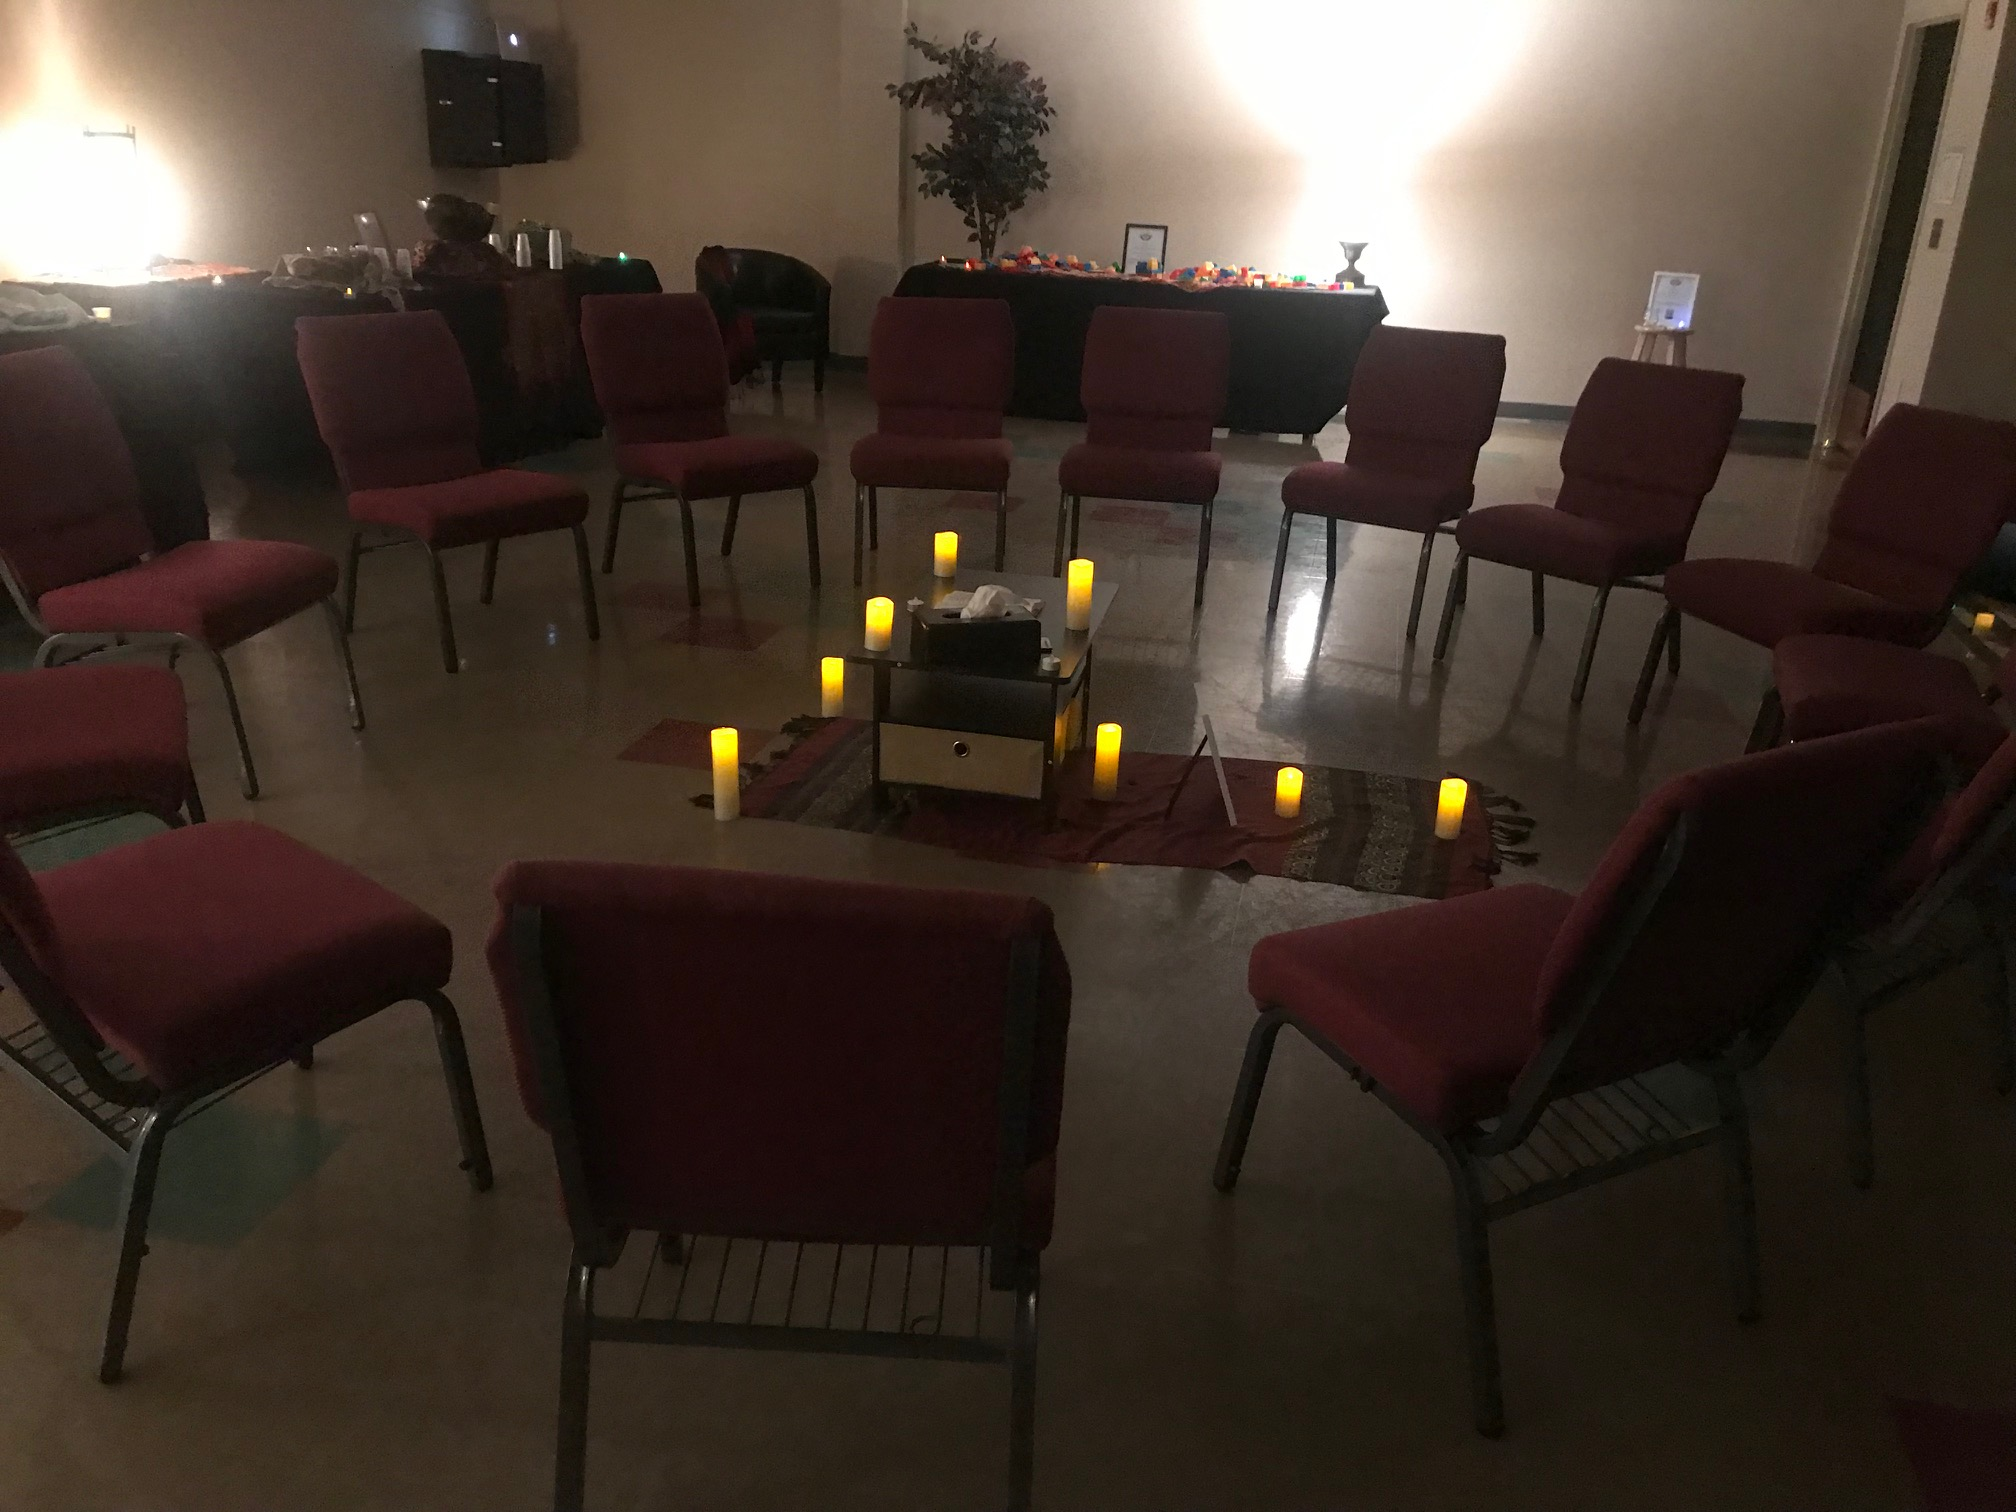 For Conferences - Needing a temporary installation for an event? Let's cater the stations and activities around the theme/scriptures of the conference.